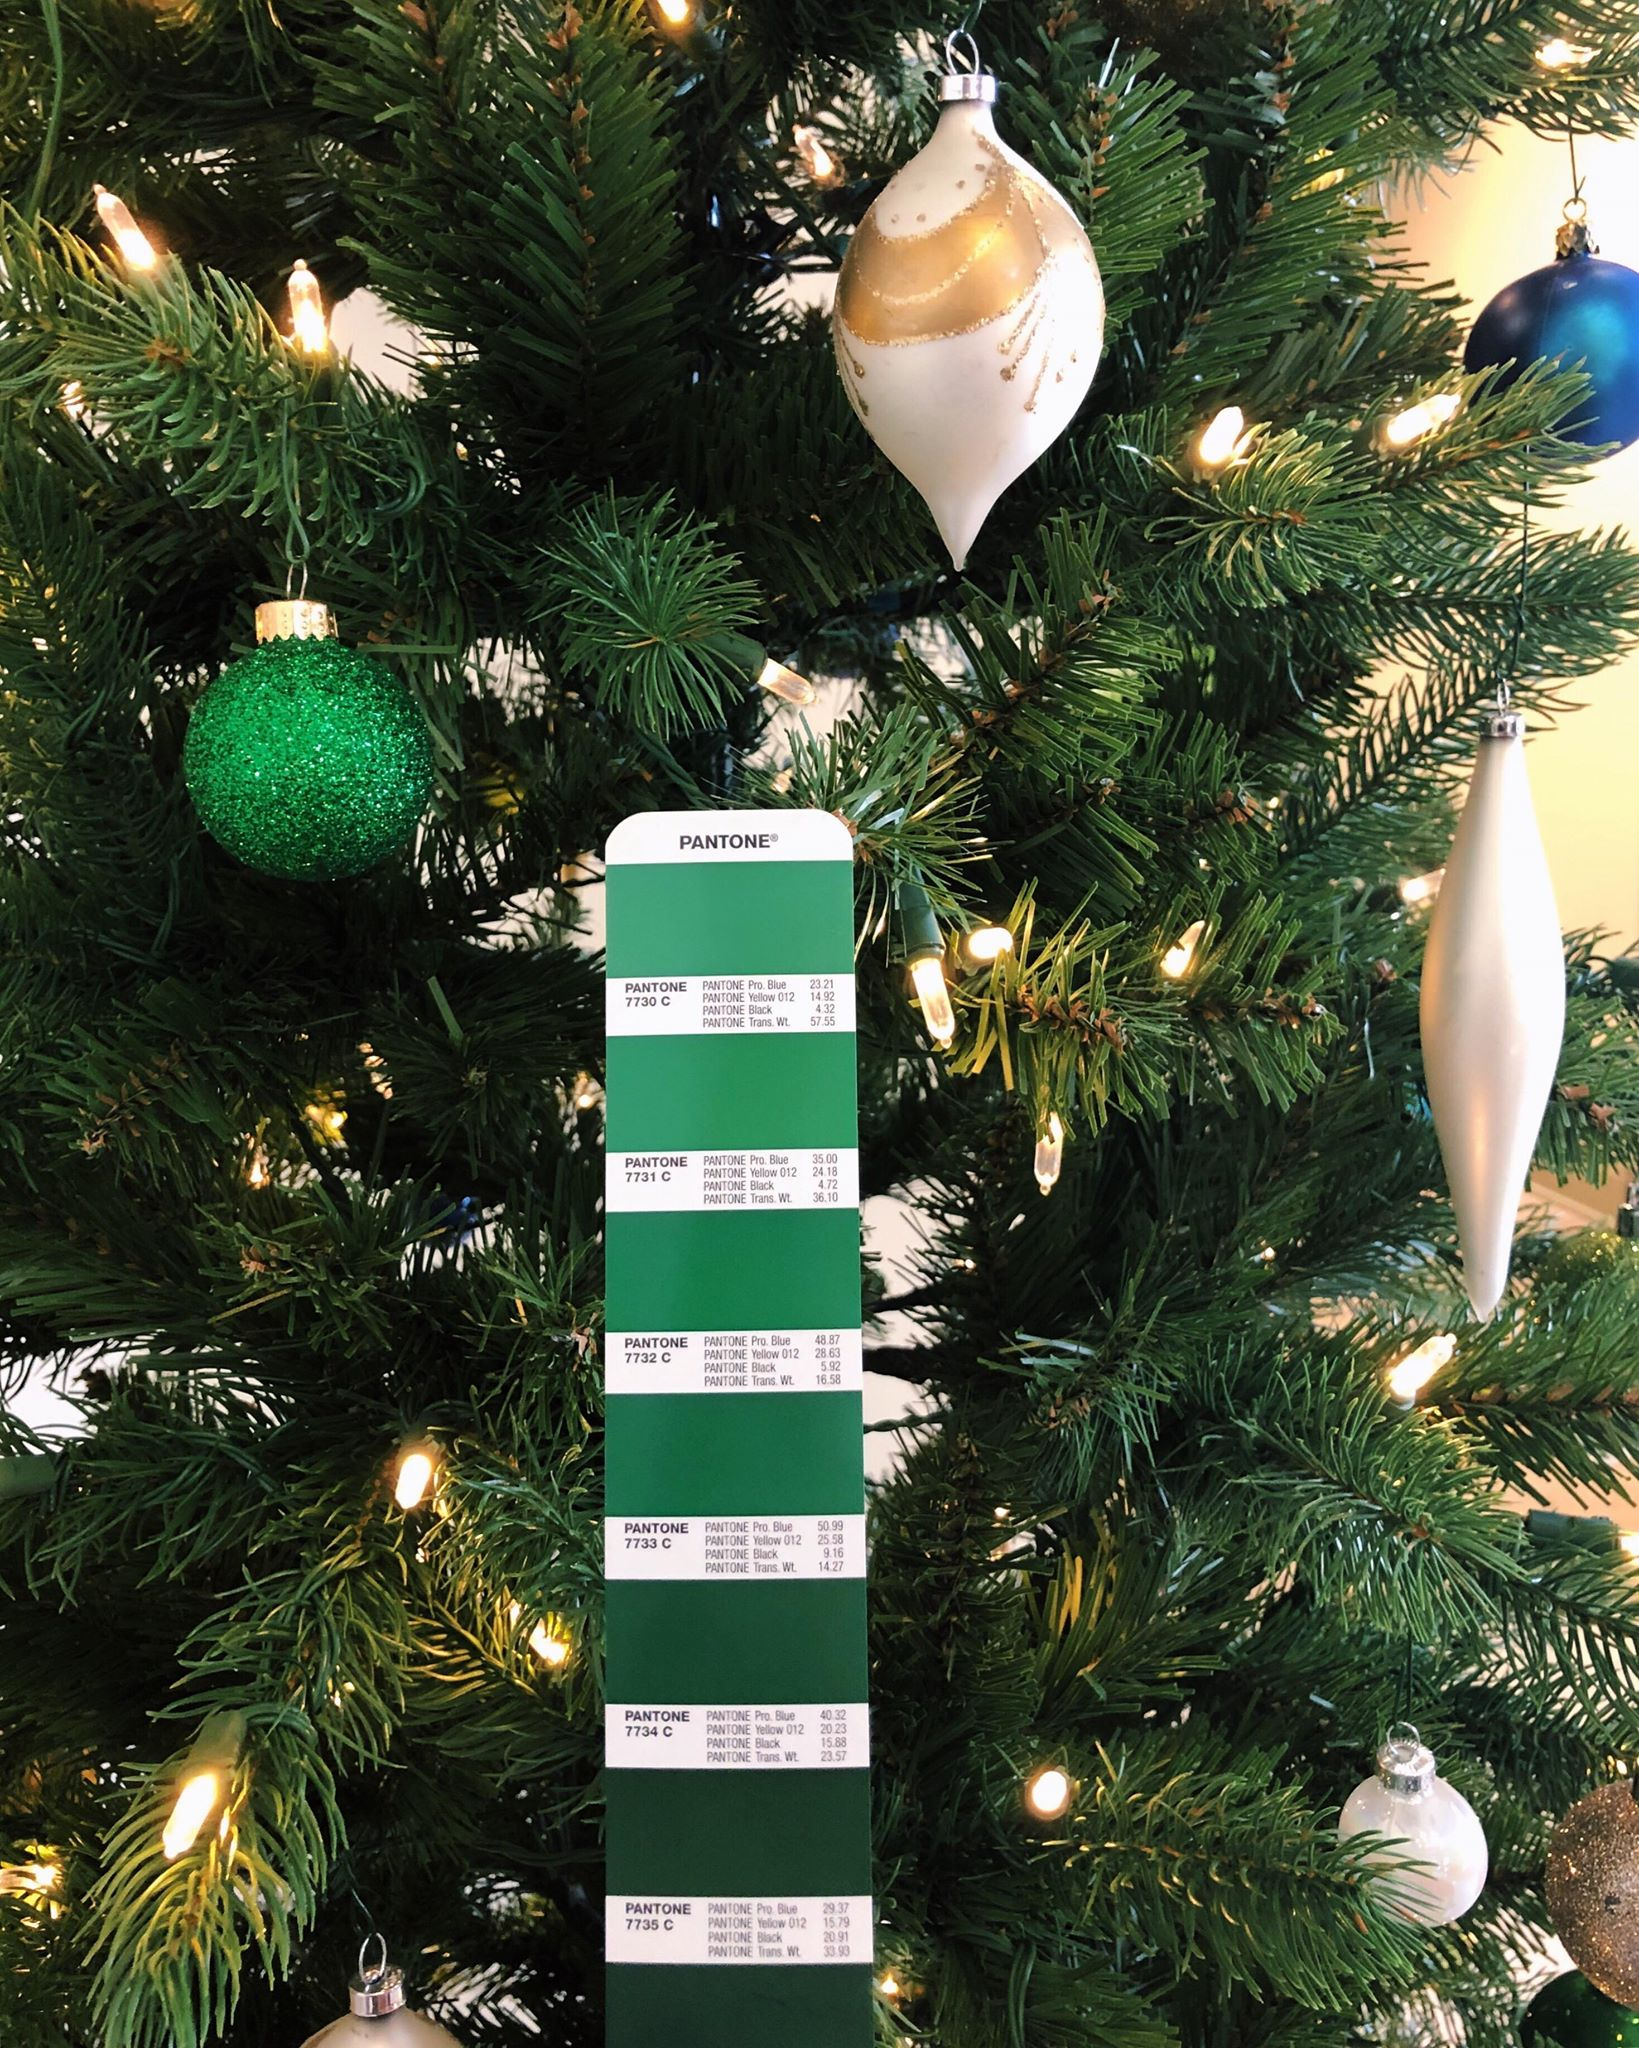 Pantone Christmas Ornaments Oh Christmas Tree Oh Christmas Tree Ours Is Lookin Like 7733 C